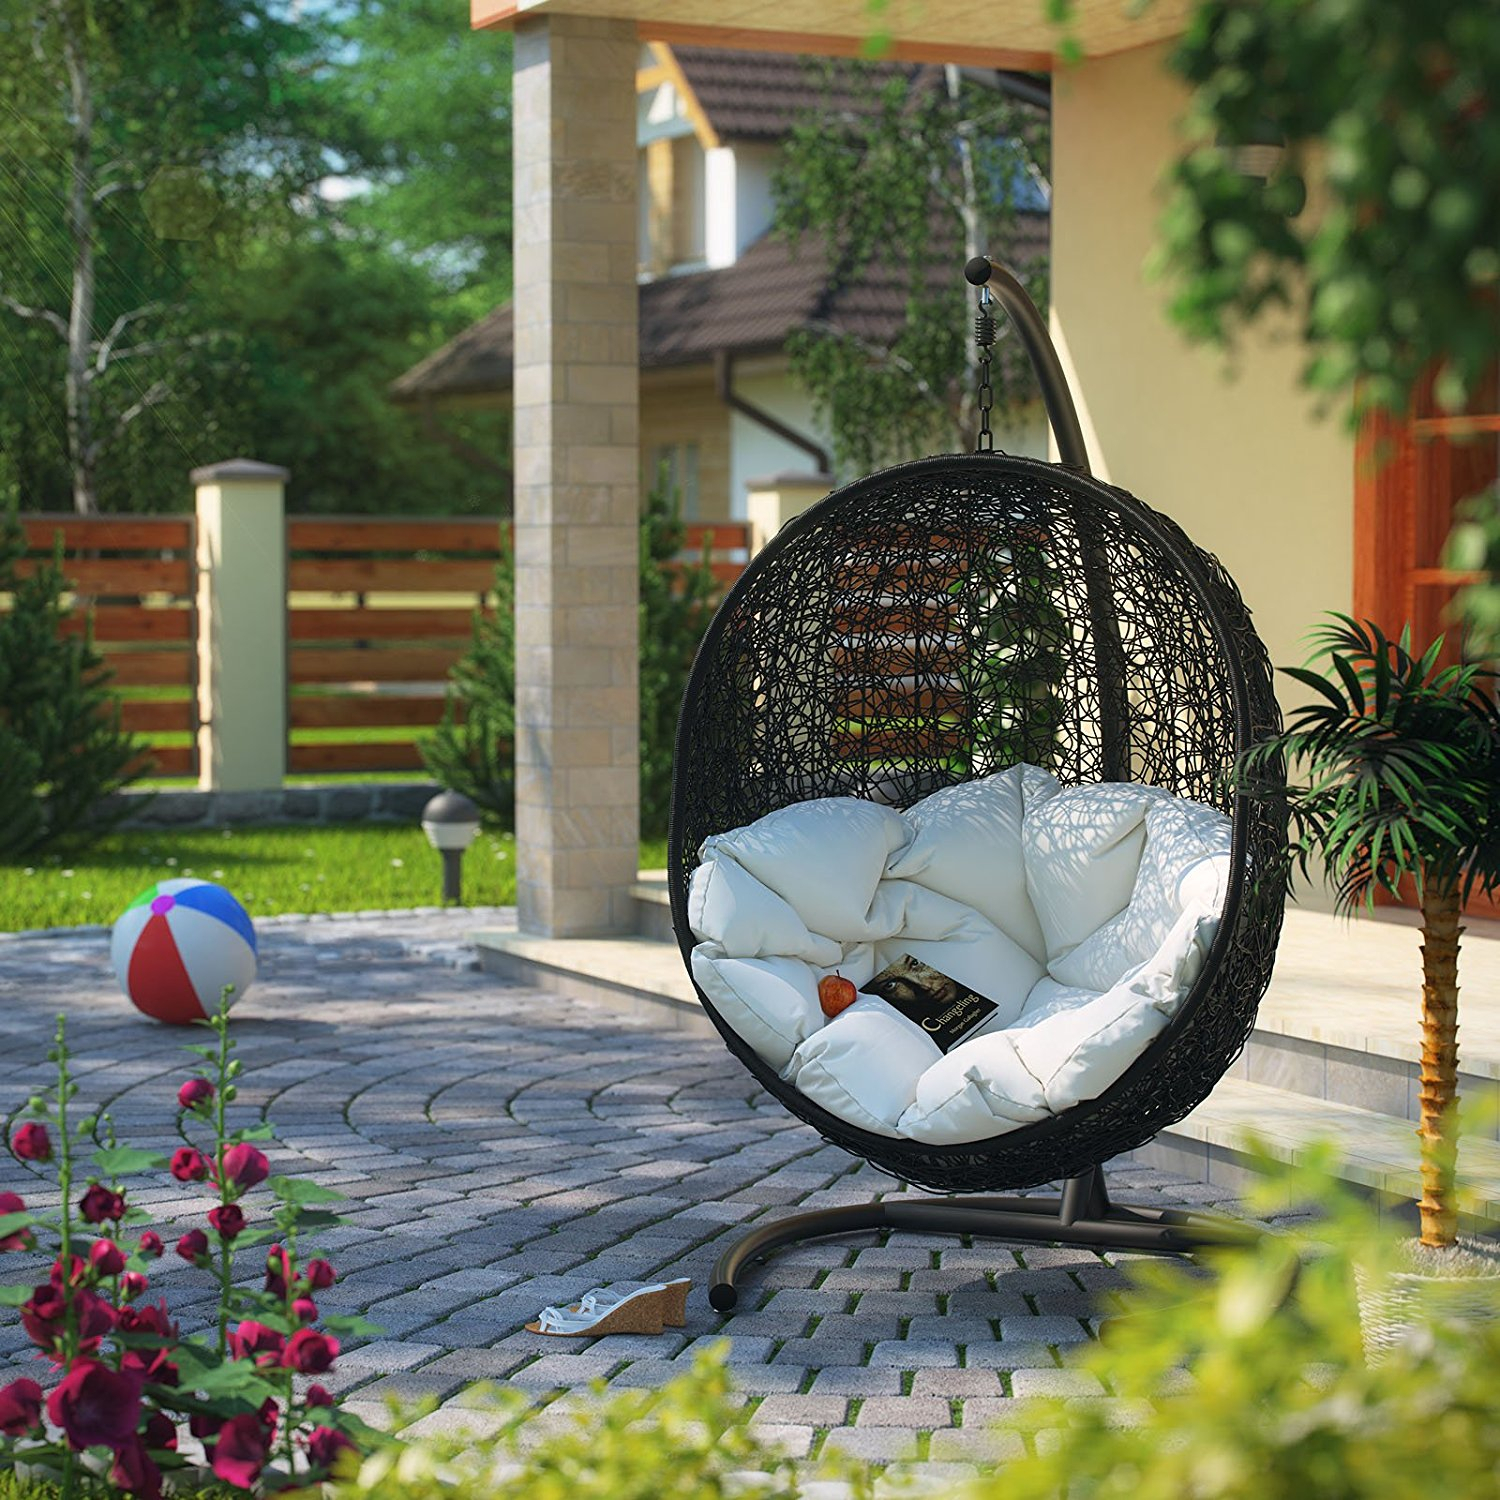 China Rattan Outdoor Patio Swing Chair Manufacturers And Regarding Rattan Garden Swing Chairs (View 16 of 25)